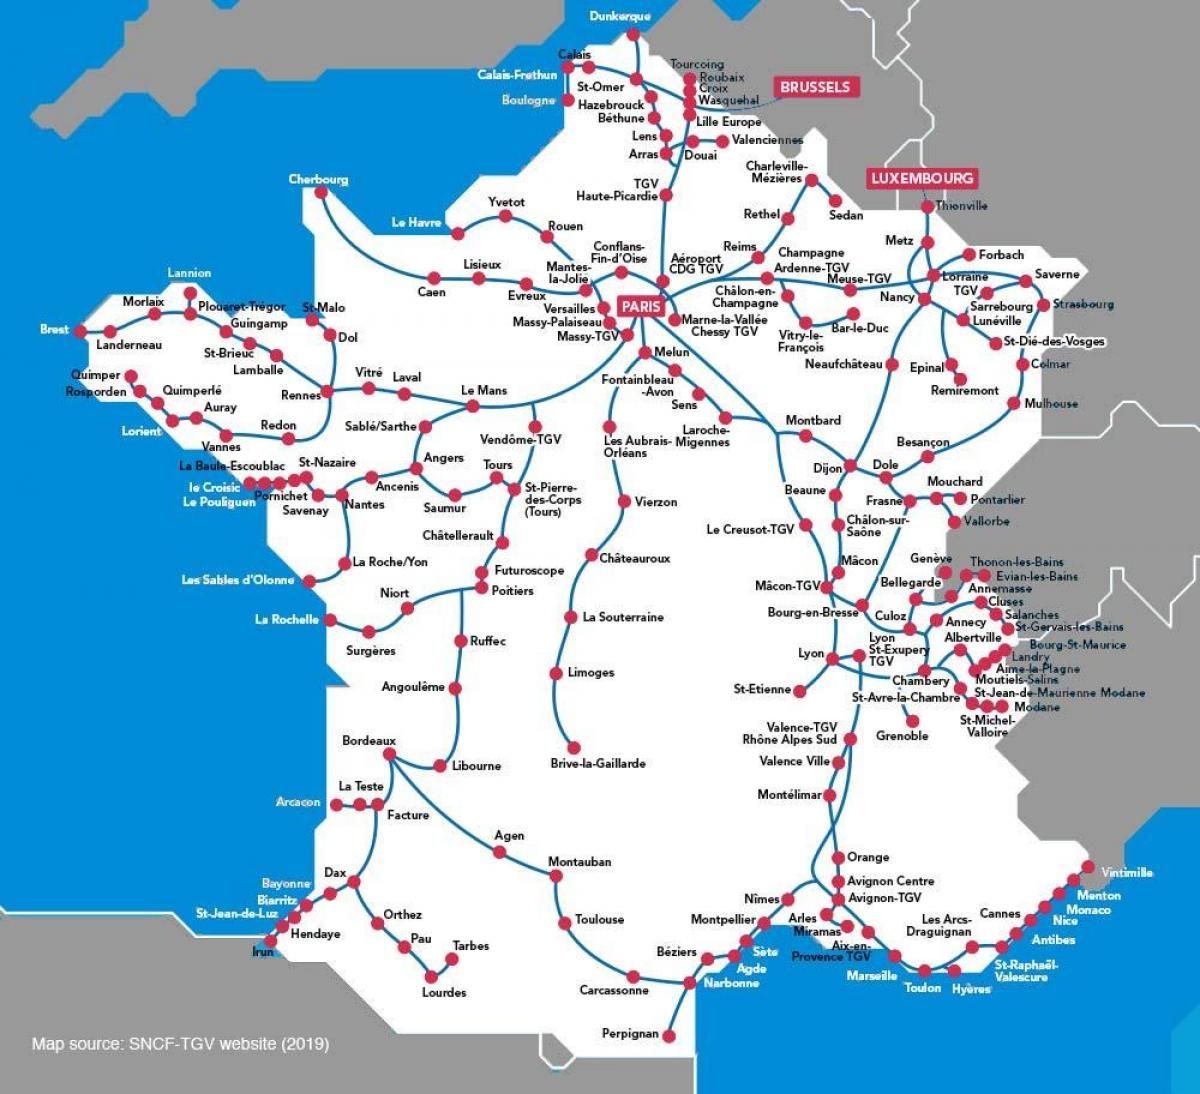 Tgv train map France   Tgv map France rail (Western Europe   Europe)